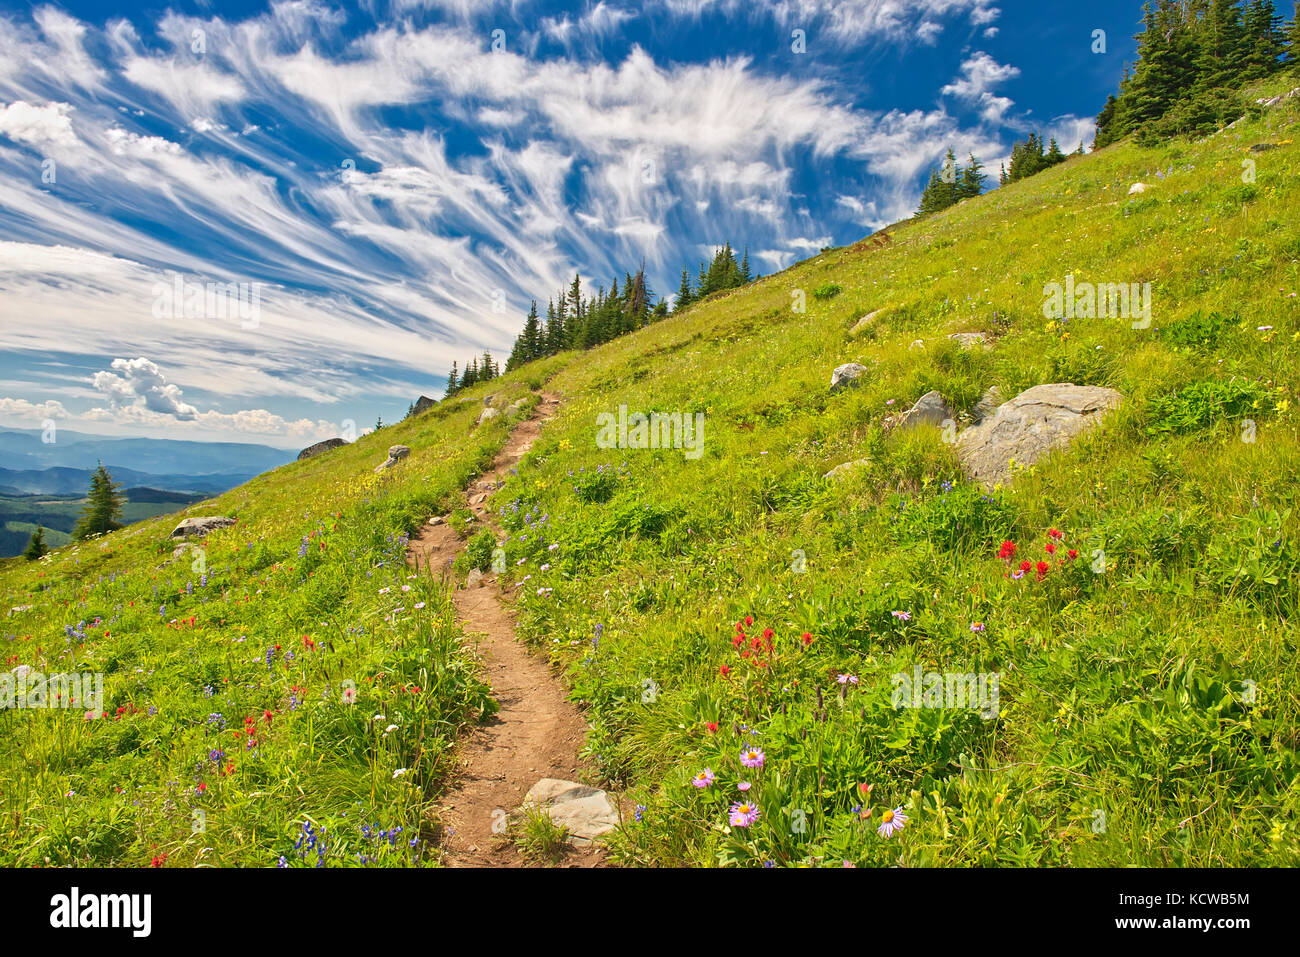 Wildflowers in the alpine zone at the summit of Sun Peaks (Lupines, paintbrush, composite), Near Kamloops, British - Stock Image